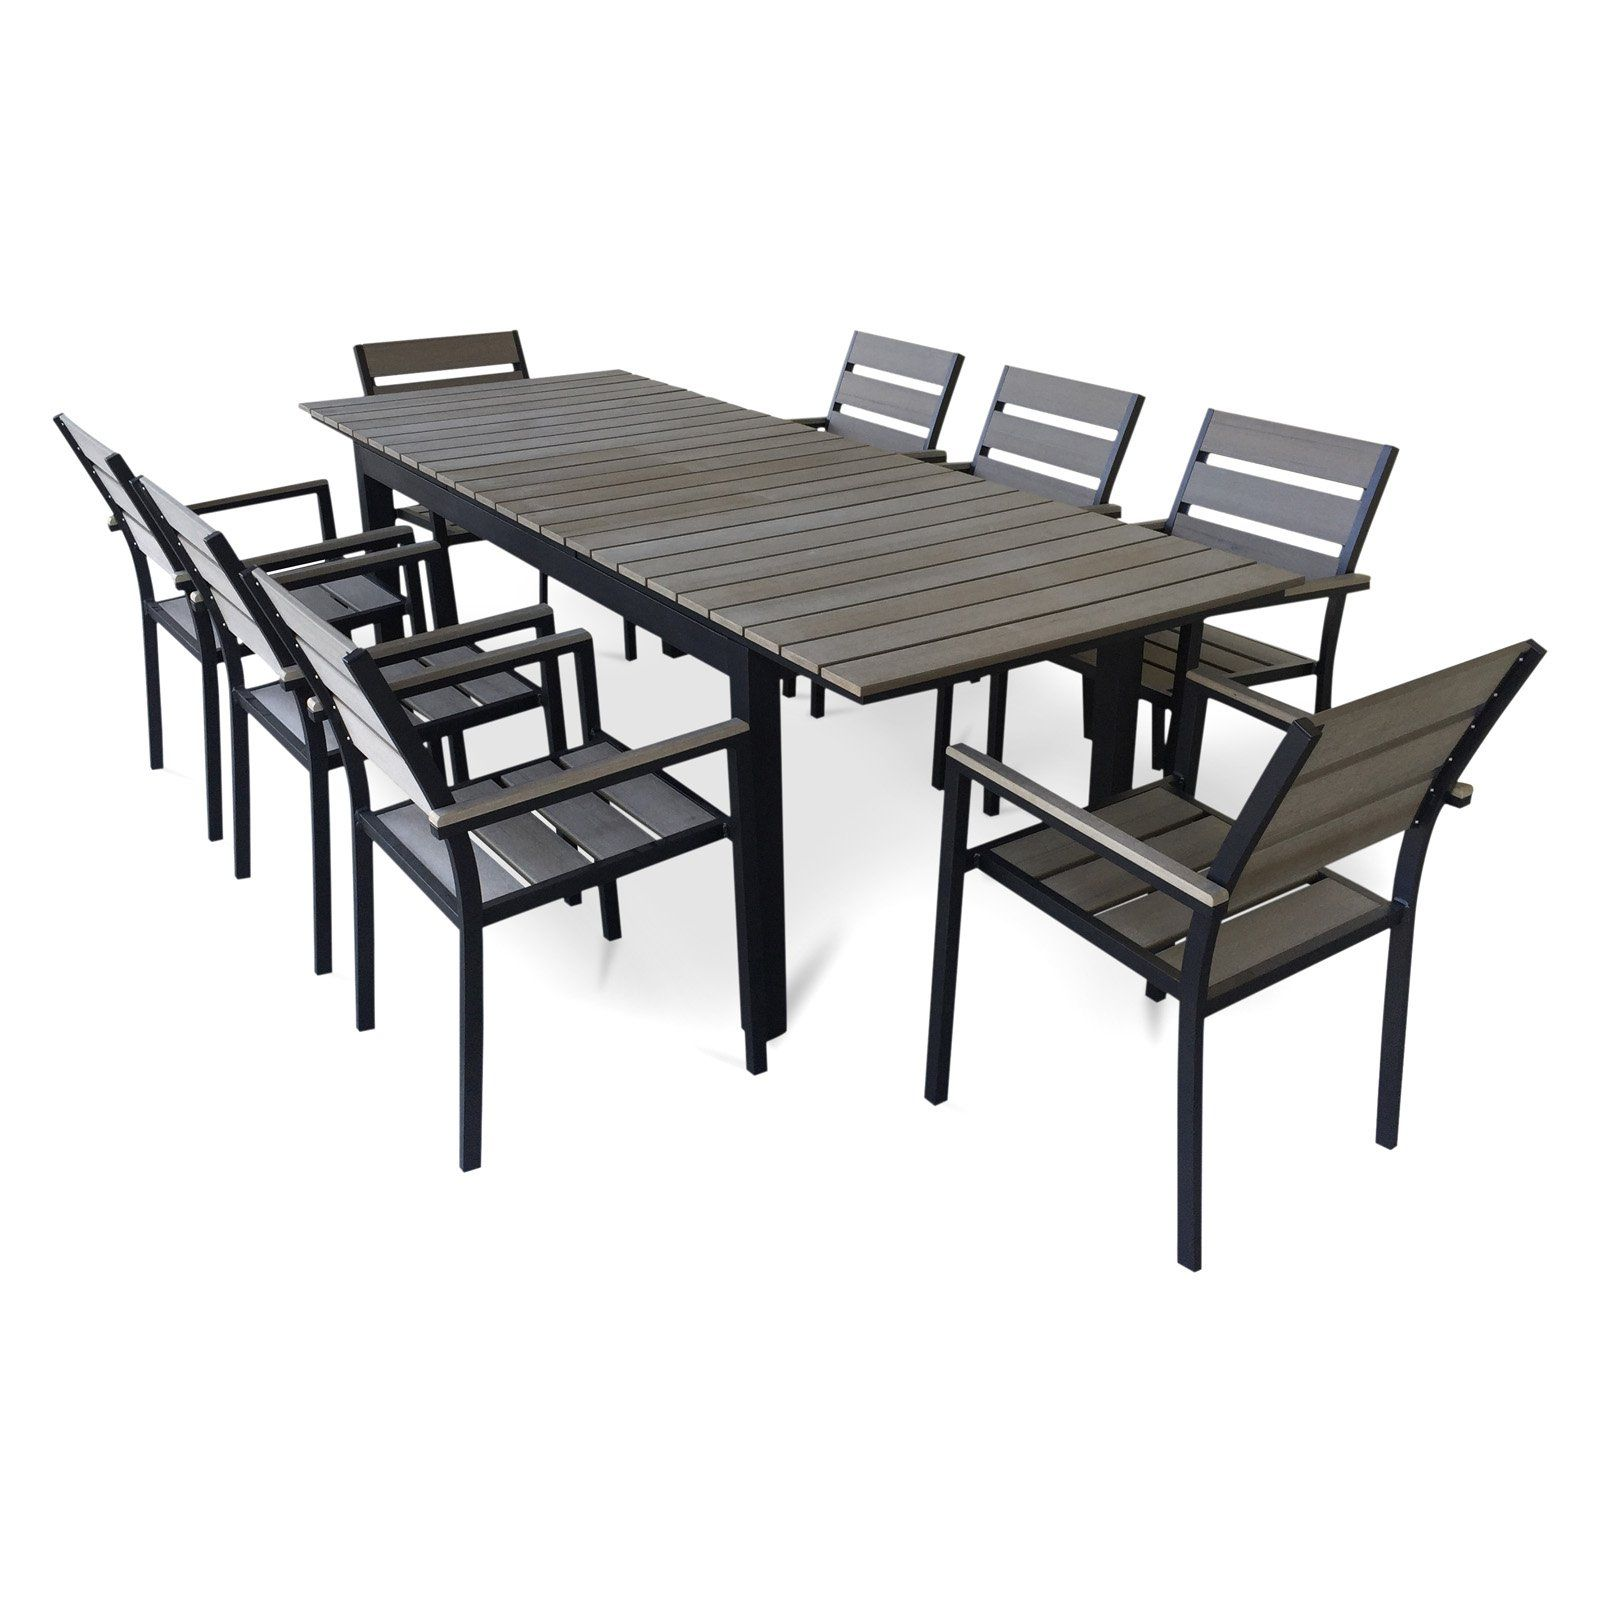 Urban Furnishing 9 Piece Eco Wood Extendable Outdoor Patio Dining Set